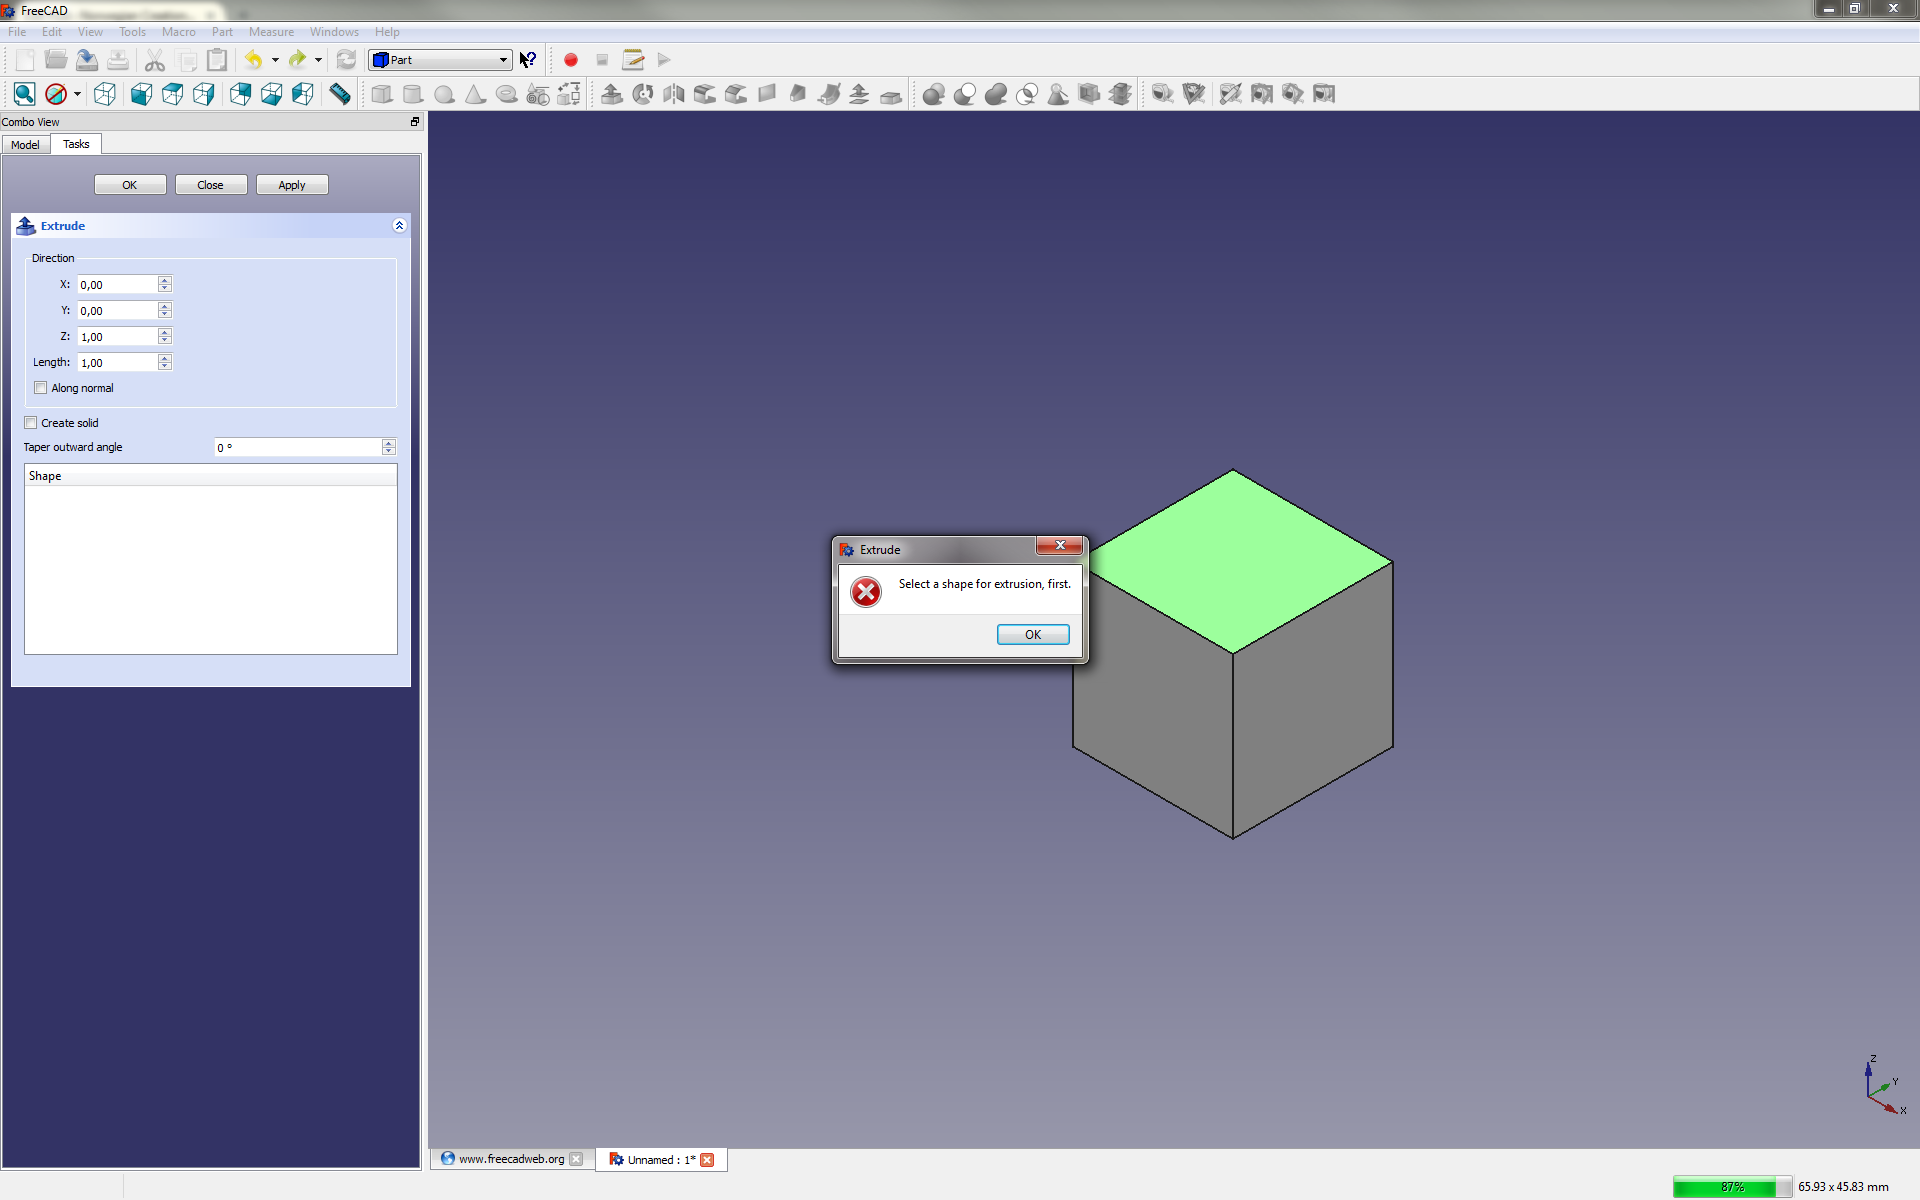 A Quick Look at FreeCAD